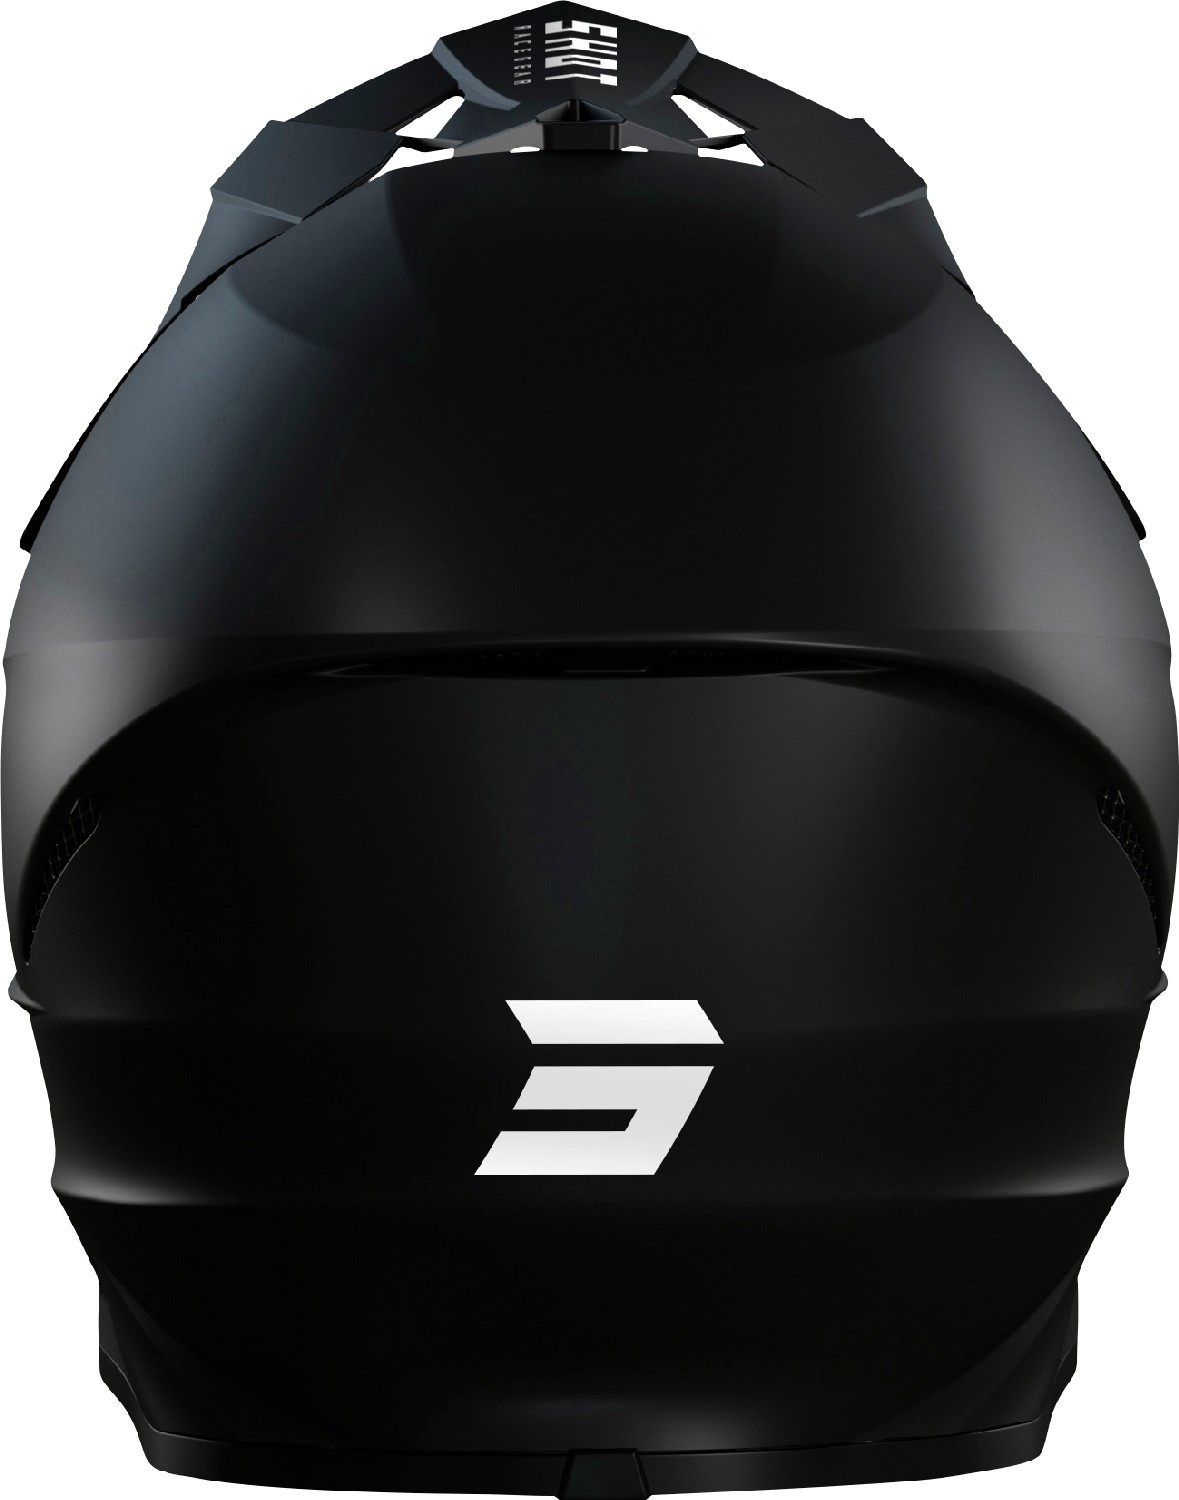 Capacete FURIOUS SOLID 2.0